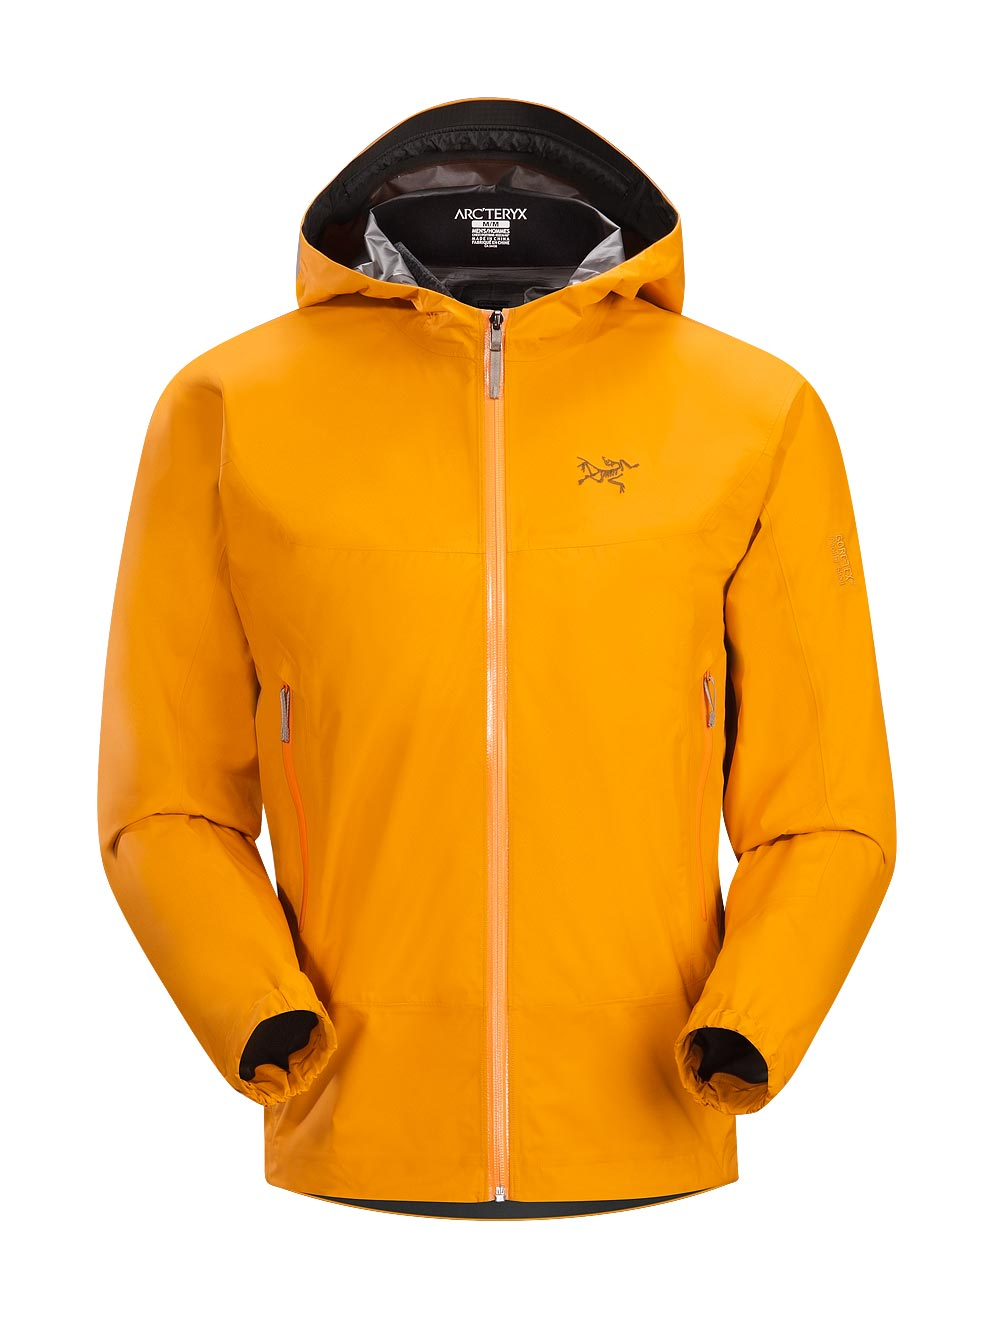 Arcteryx Jackets Men Summer Squash Consular Jacket - New